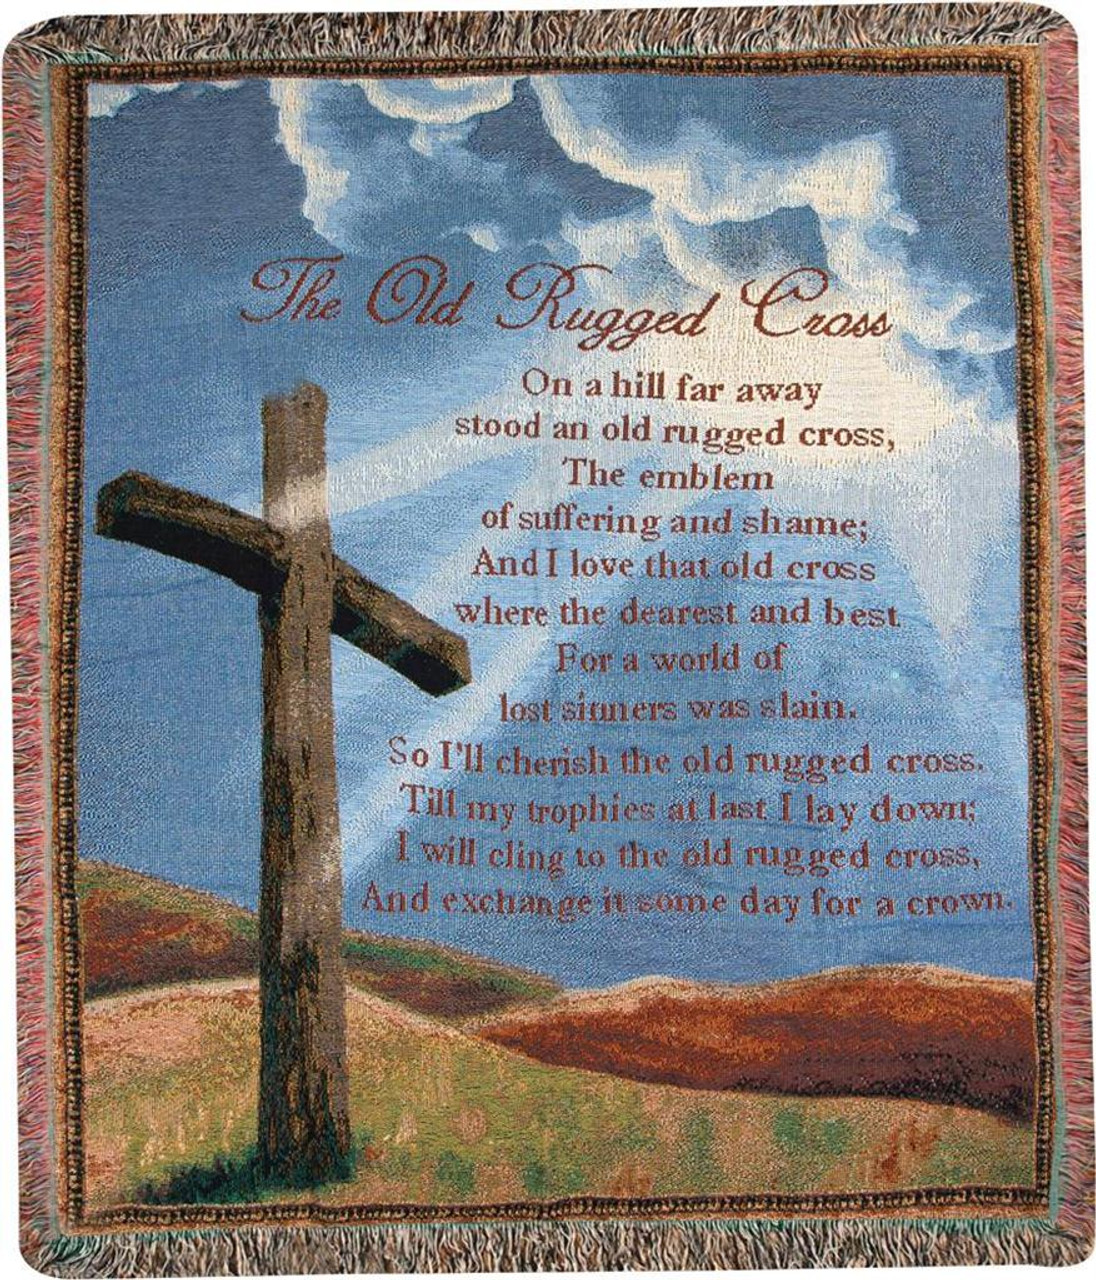 The Old Rugged Cross On A Hill Far Away Stood An